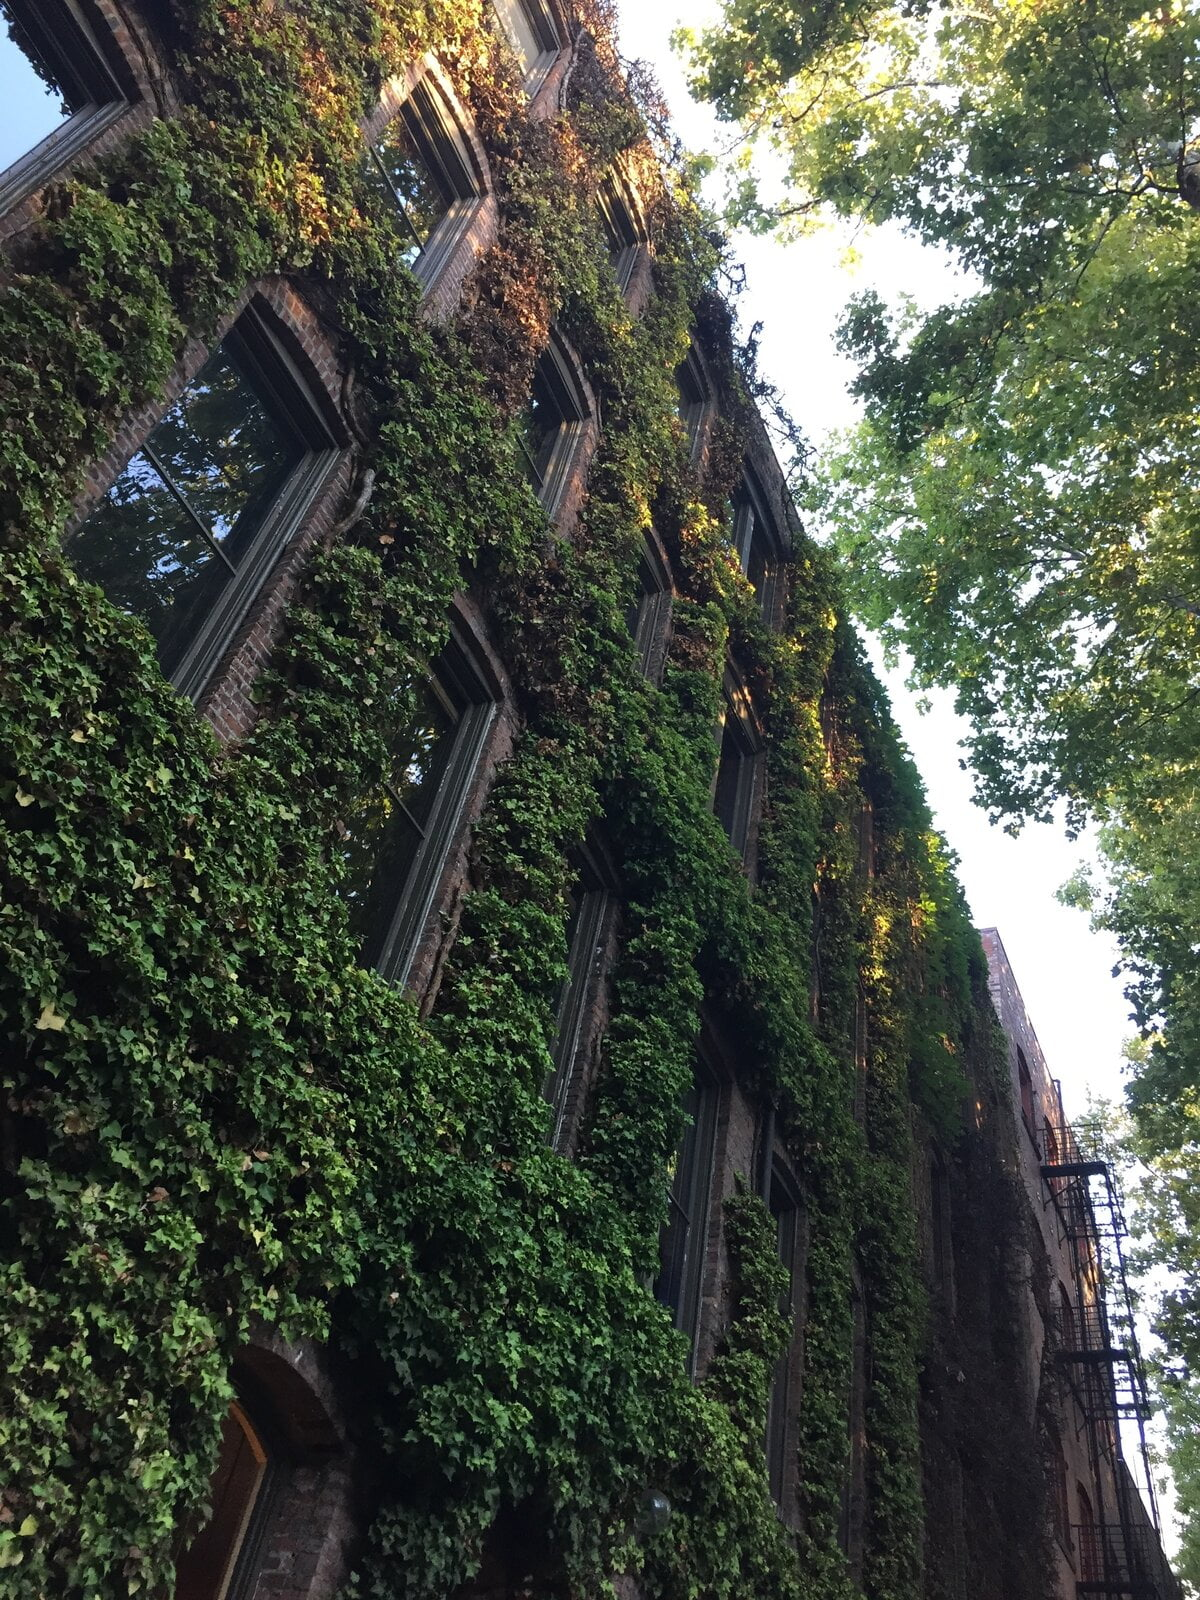 Image description. ivy growing on the facade of a house